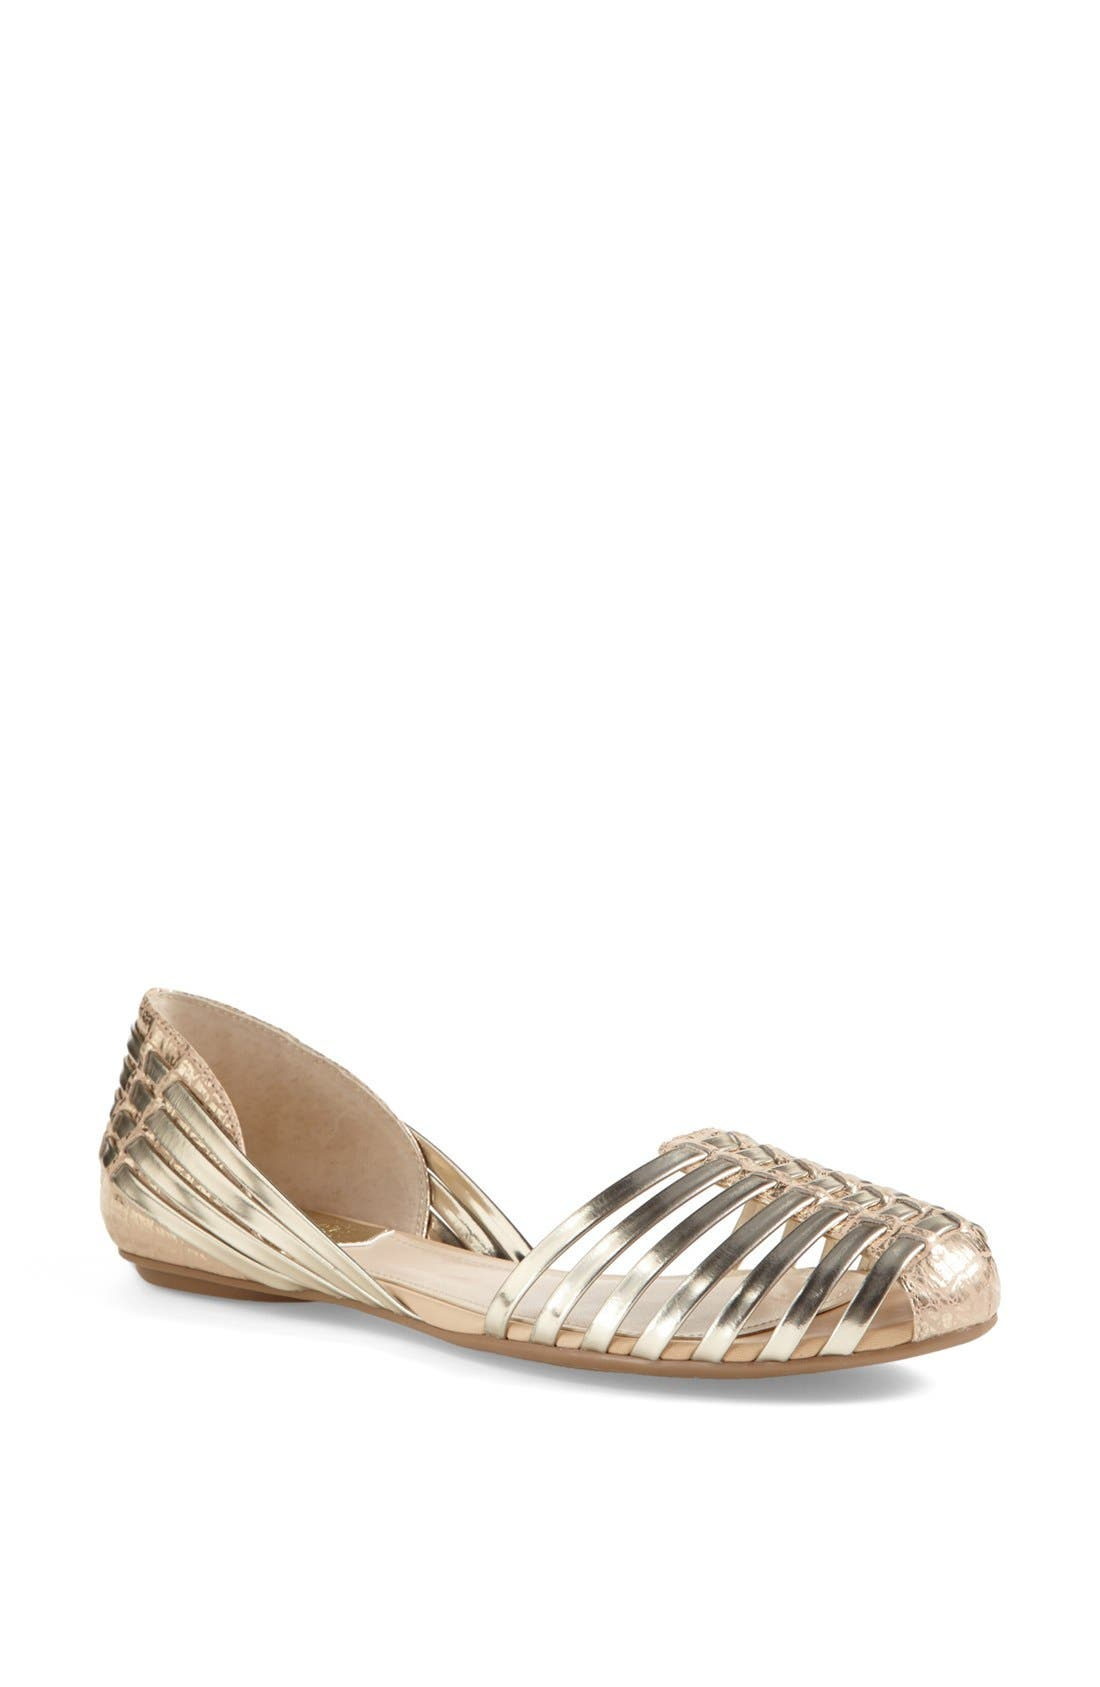 Alternate Image 1 Selected - Vince Camuto 'Caprio' Flat